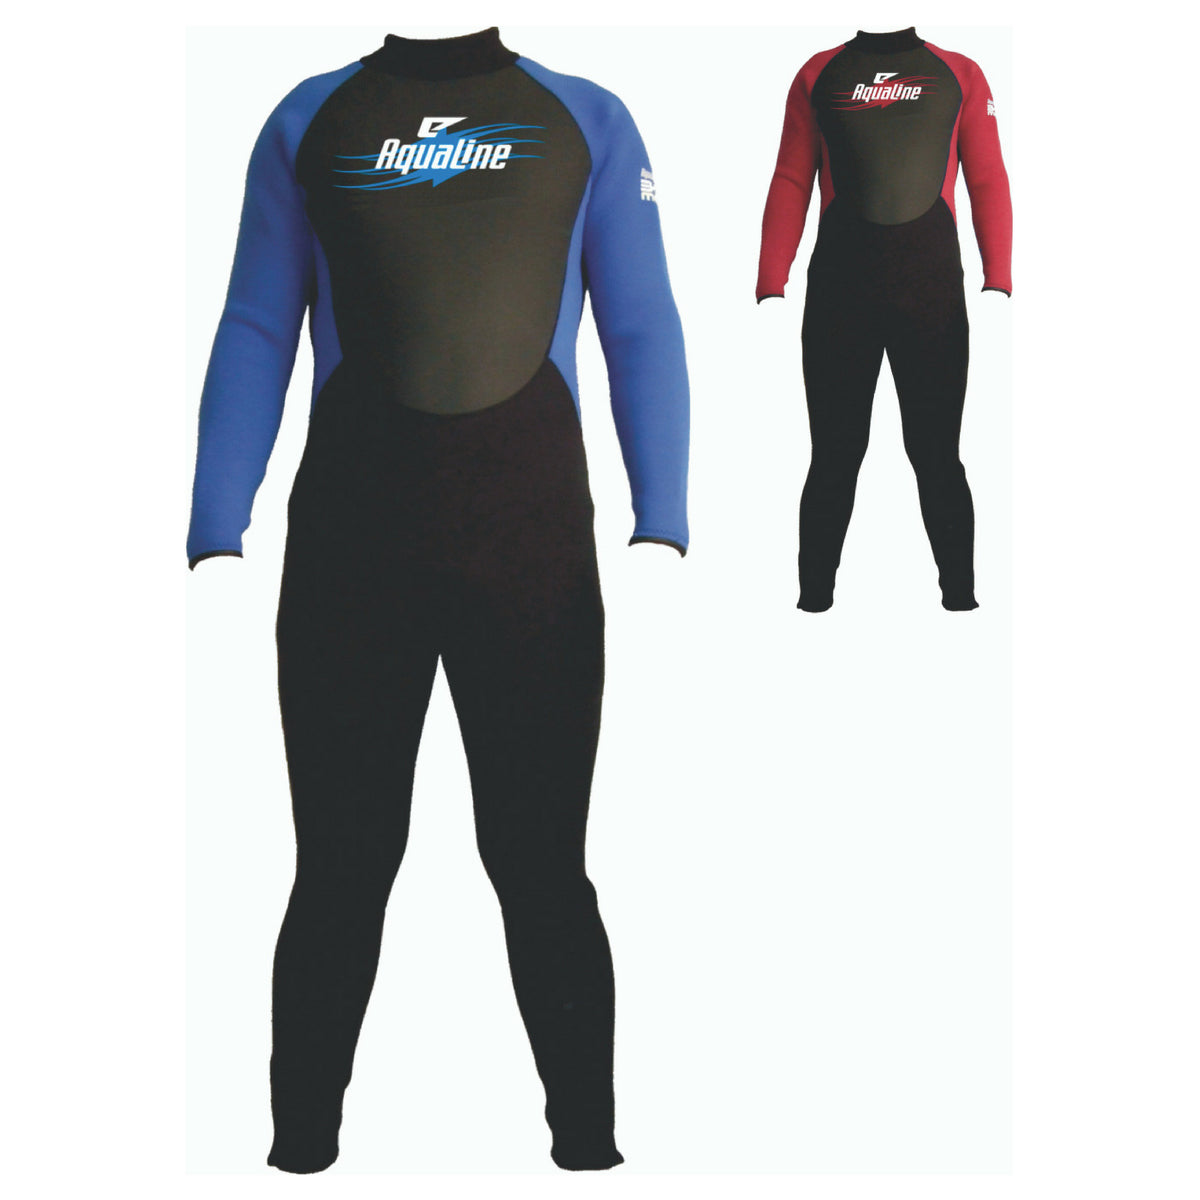 Aqualine Wetsuit - Full Junior Unisex